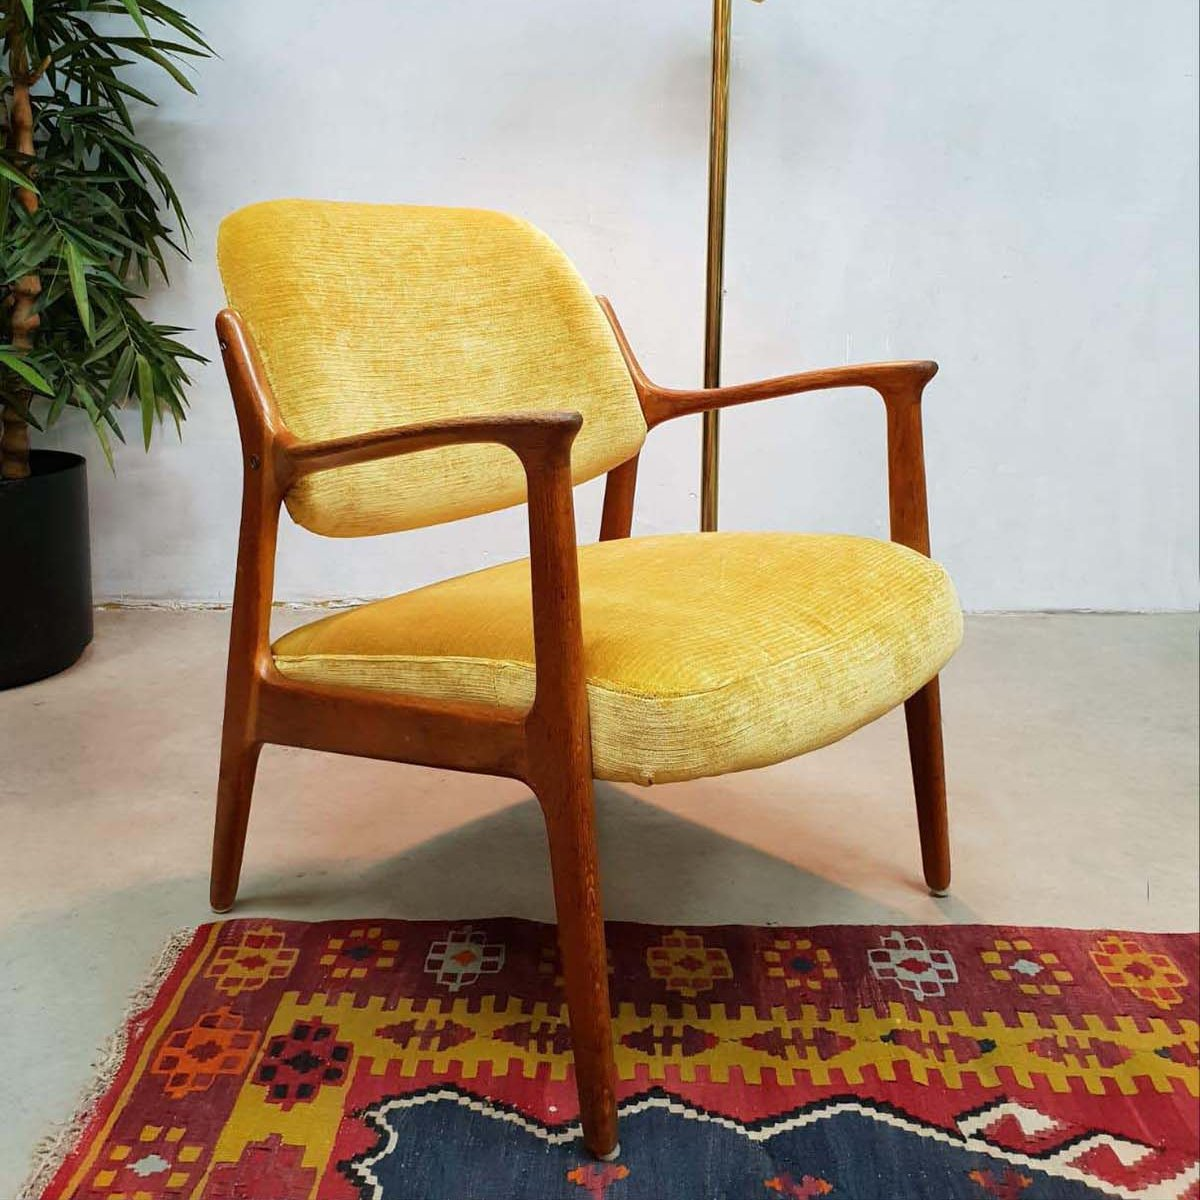 Midcentury Modern Yellow Arm Chair 1950s 91949